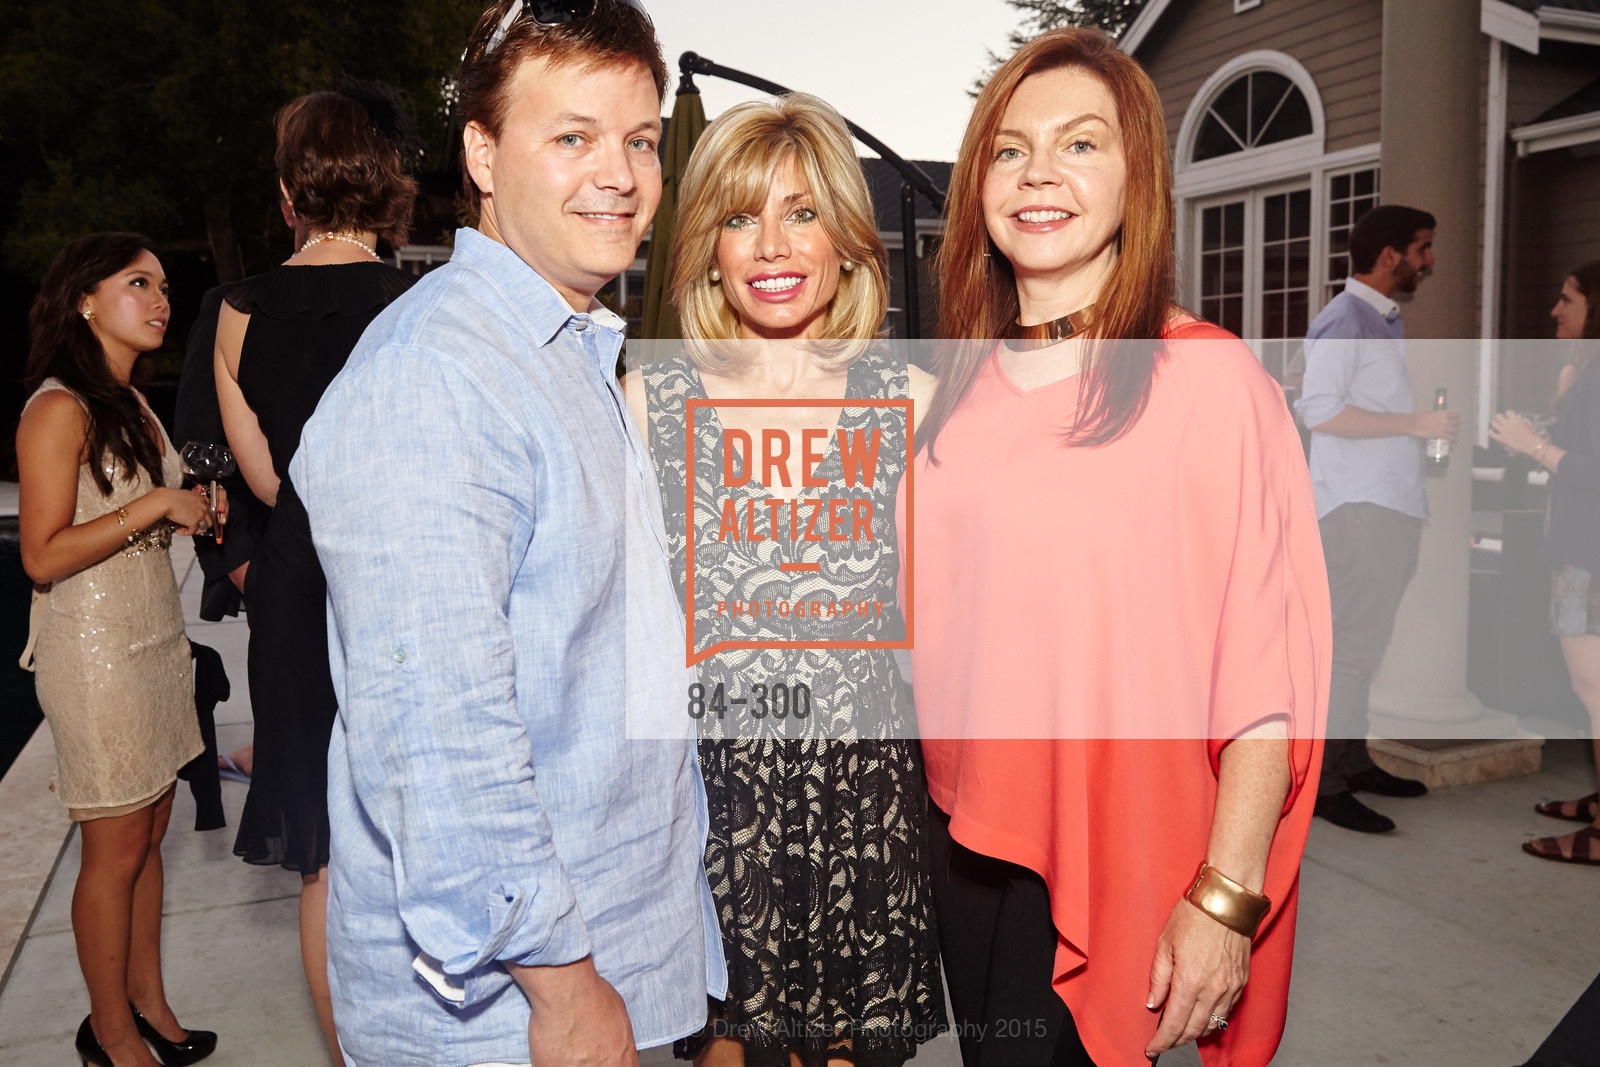 Top Picks, Breast Cancer Awareness Fund Presents This Old Bag Silicon Valley Preview Party, September 19th, 2015, Photo,Drew Altizer, Drew Altizer Photography, full-service agency, private events, San Francisco photographer, photographer california